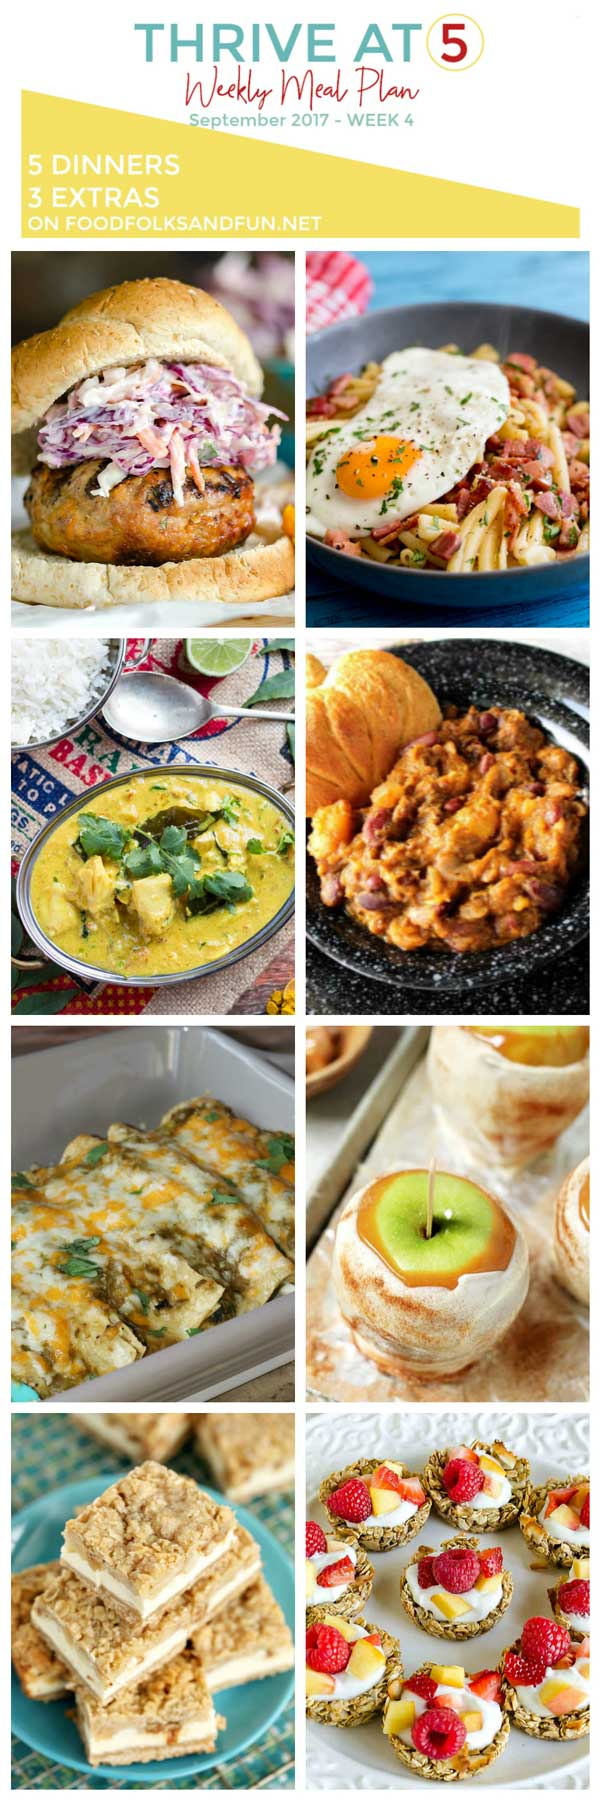 A collage of various dinner ideas with text overlay for Pinterest